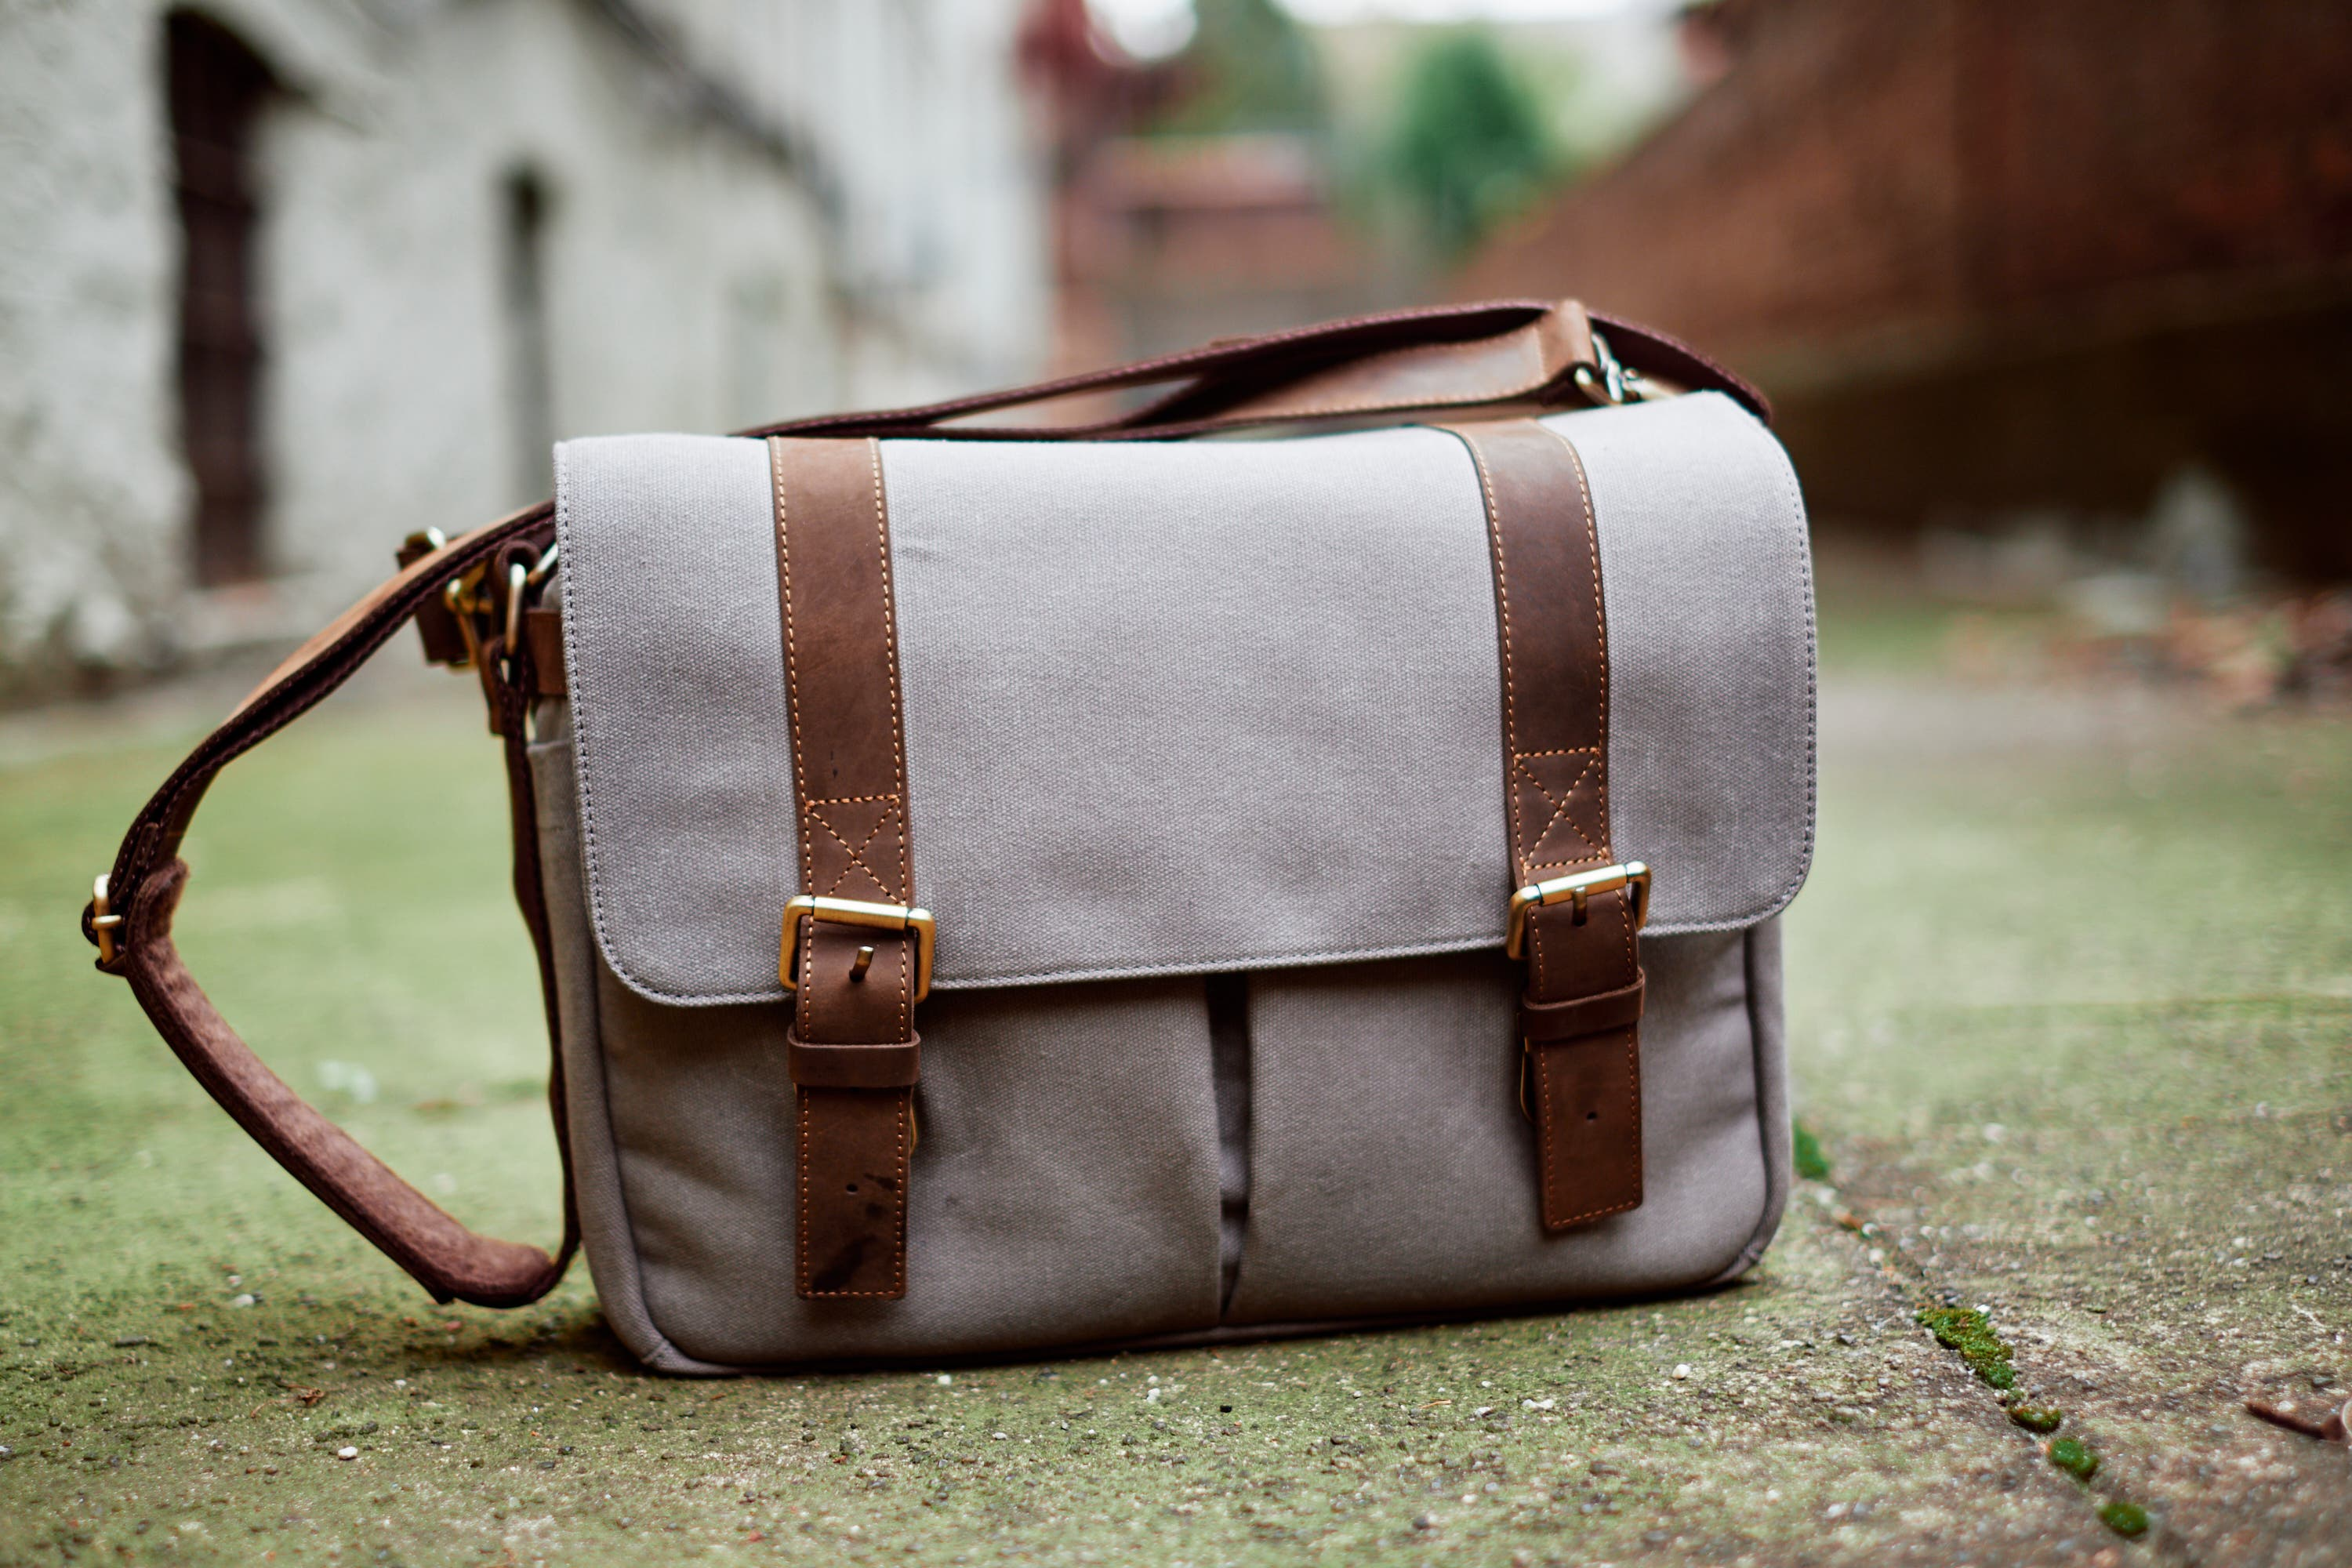 Camera Bag Review: Portage Supply Mariner Messenger Bag